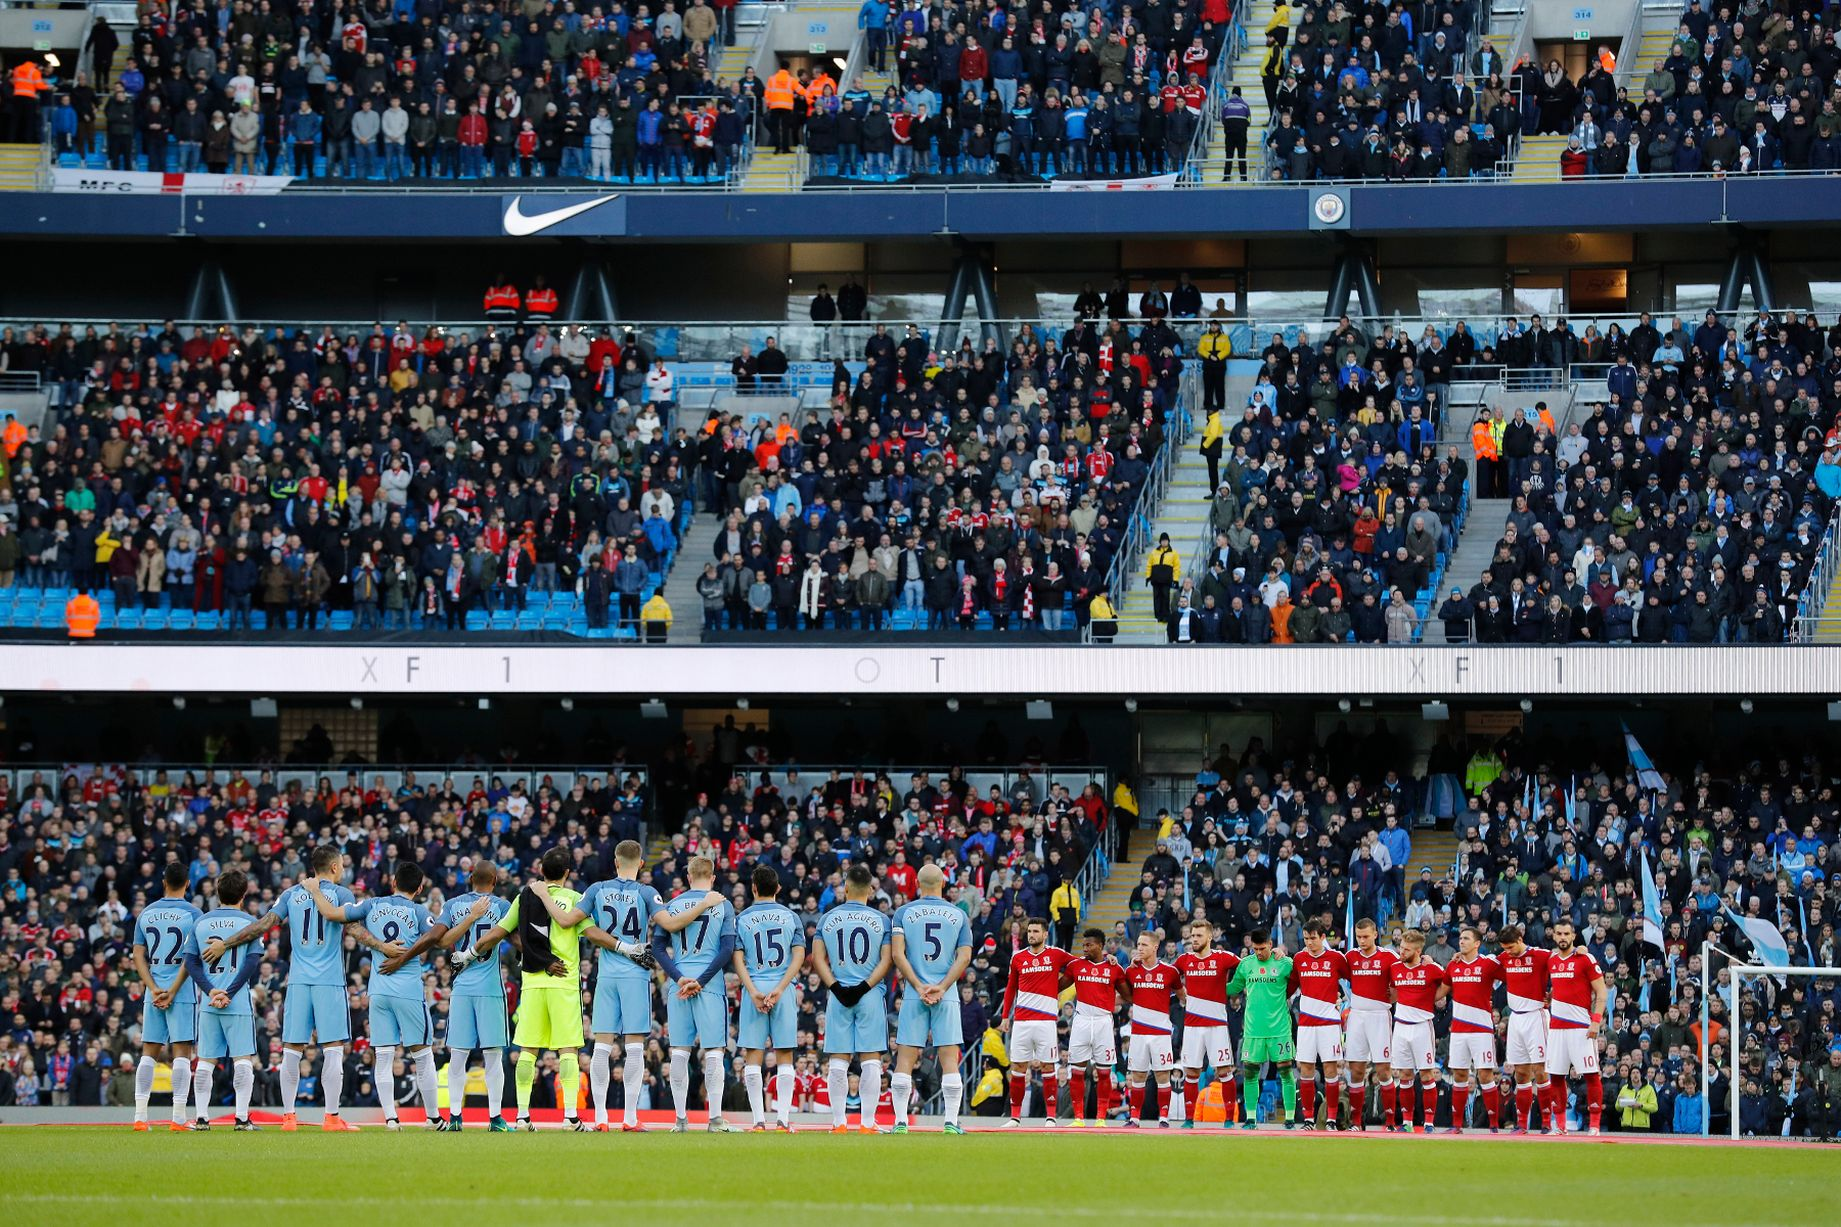 players-line-up-during-a-minutes-silence-as-part-of-remembrance-commemorations-before-the-match